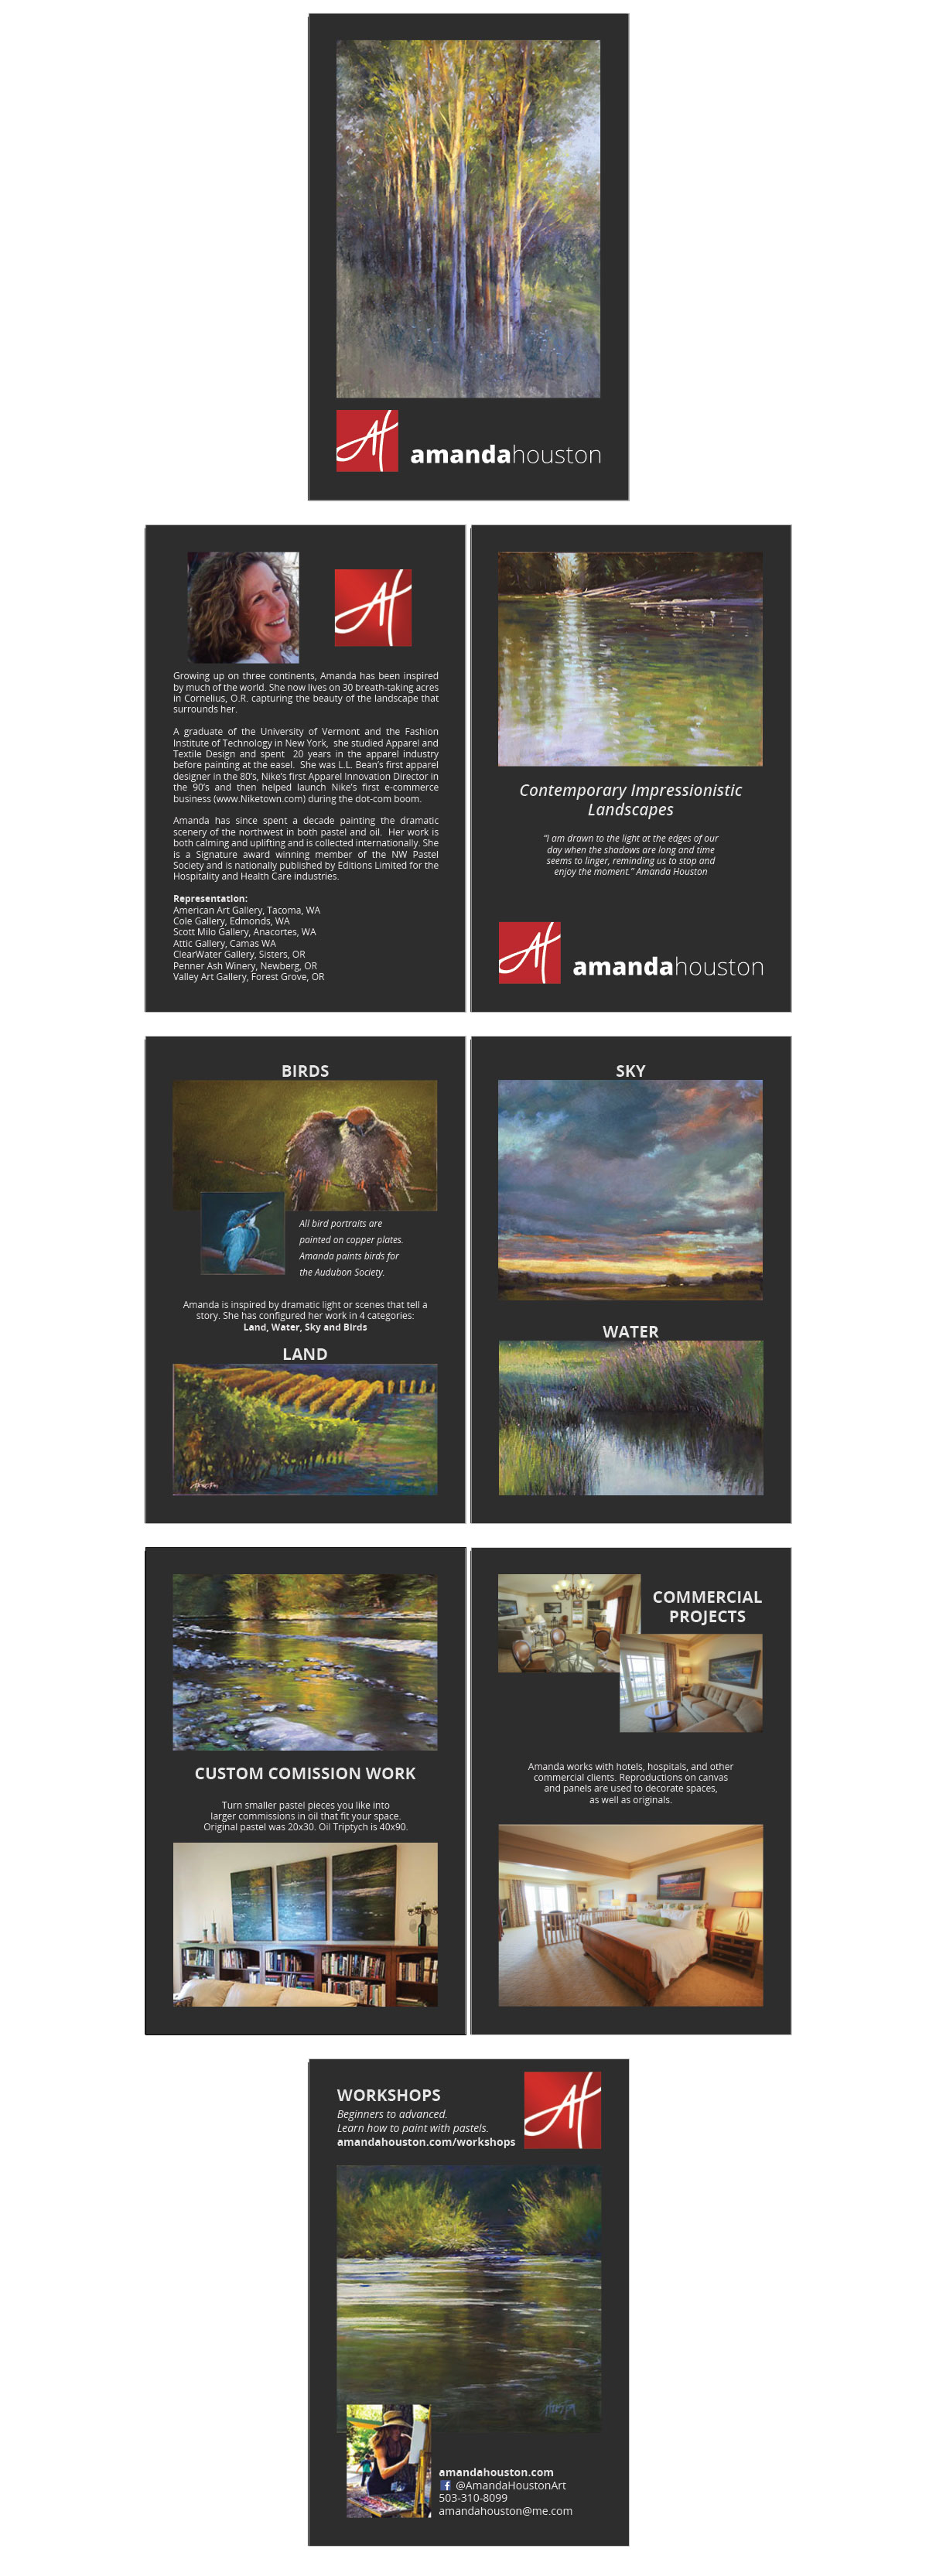 Print Booklet Marketing Materials for Fine Artist Amanda Houston